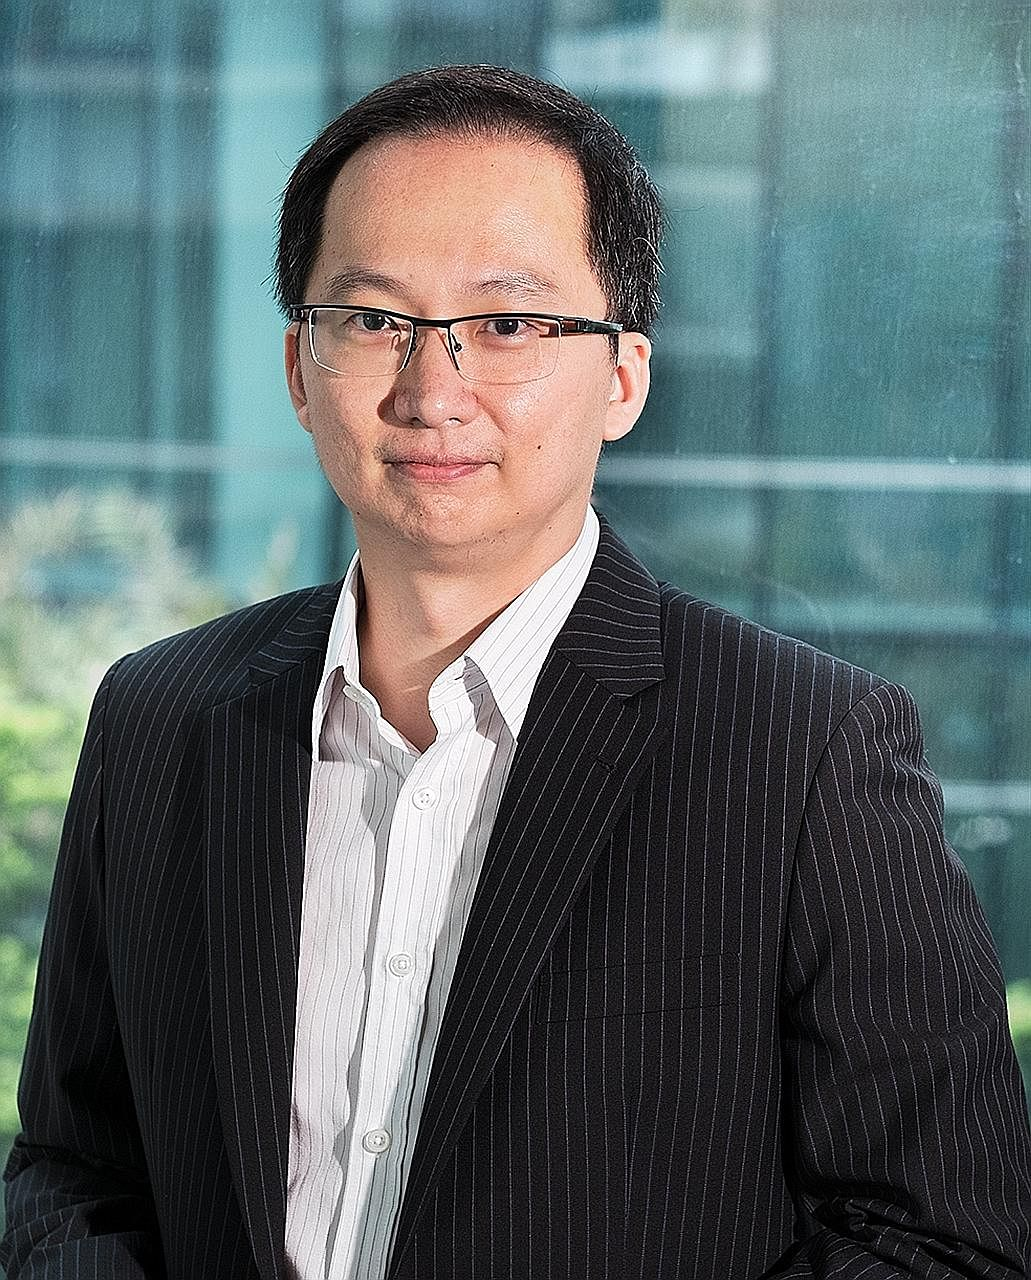 Mr Freddy Lim, digital wealth management firm StashAway's co-founder, says major providers of index-tracking funds have been boosting their corporate governance resources in recent years.